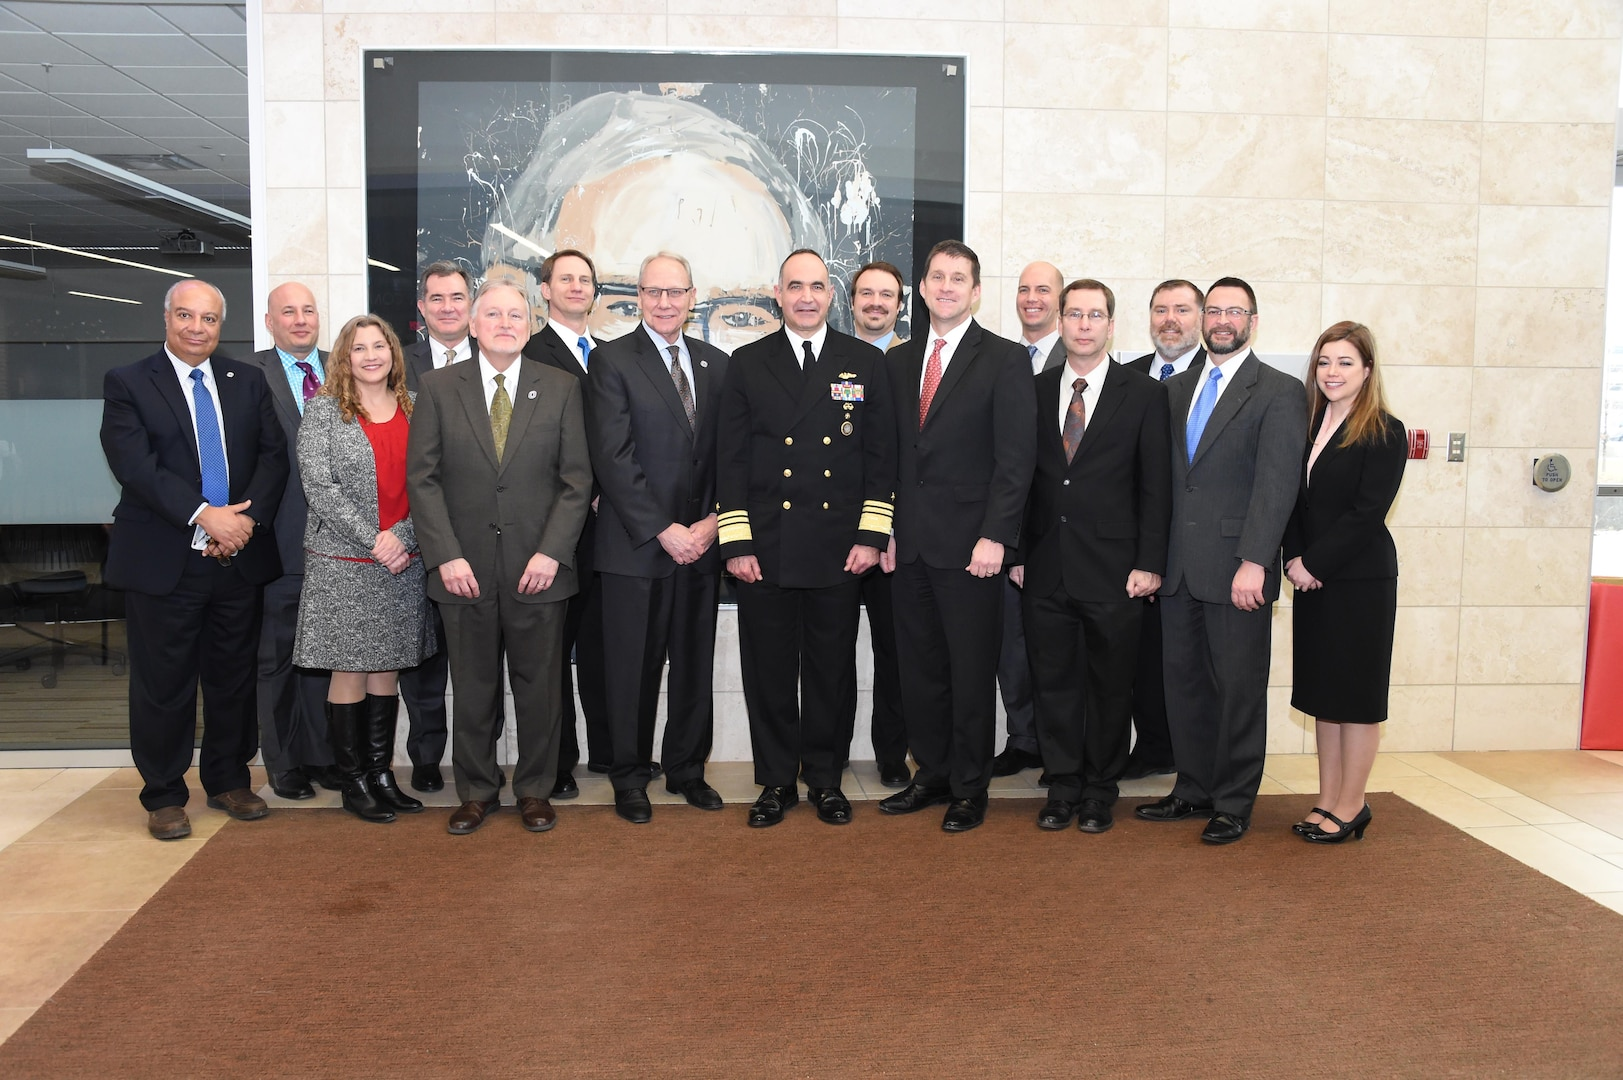 """U.S. Navy Vice Adm. Charles """"Chas"""" A. Richard (center), deputy commander of U.S. Strategic Command (USSTRATCOM); Dr. Hank Bounds (fourth from right), president of University of Nebraska; John Christensen (fourth from left), chancellor of the University of Nebraska at Omaha (UNO); Dr. Lou Pol (third from left), dean of UNO College of Business; and Dr. Hesham H. Ali (left), dean of UNO College of Information Science and Technology, attend the 2017 USSTRATCOM Strategic Leadership Fellows Program kickoff along with fellows program participants at UNO's Mammel Hall, Jan. 20, 2017. The fellows program is designed to develop high-potential civilian leaders in support of USSTRATCOM organizational transformation, broaden mission awareness and develop leadership skills. One of nine DoD unified combatant commands, USSTRATCOM has global strategic missions assigned through the Unified Command Plan that include strategic deterrence; space operations; cyberspace operations; joint electronic warfare; global strike; missile defense; intelligence, surveillance and reconnaissance; and analysis and targeting."""